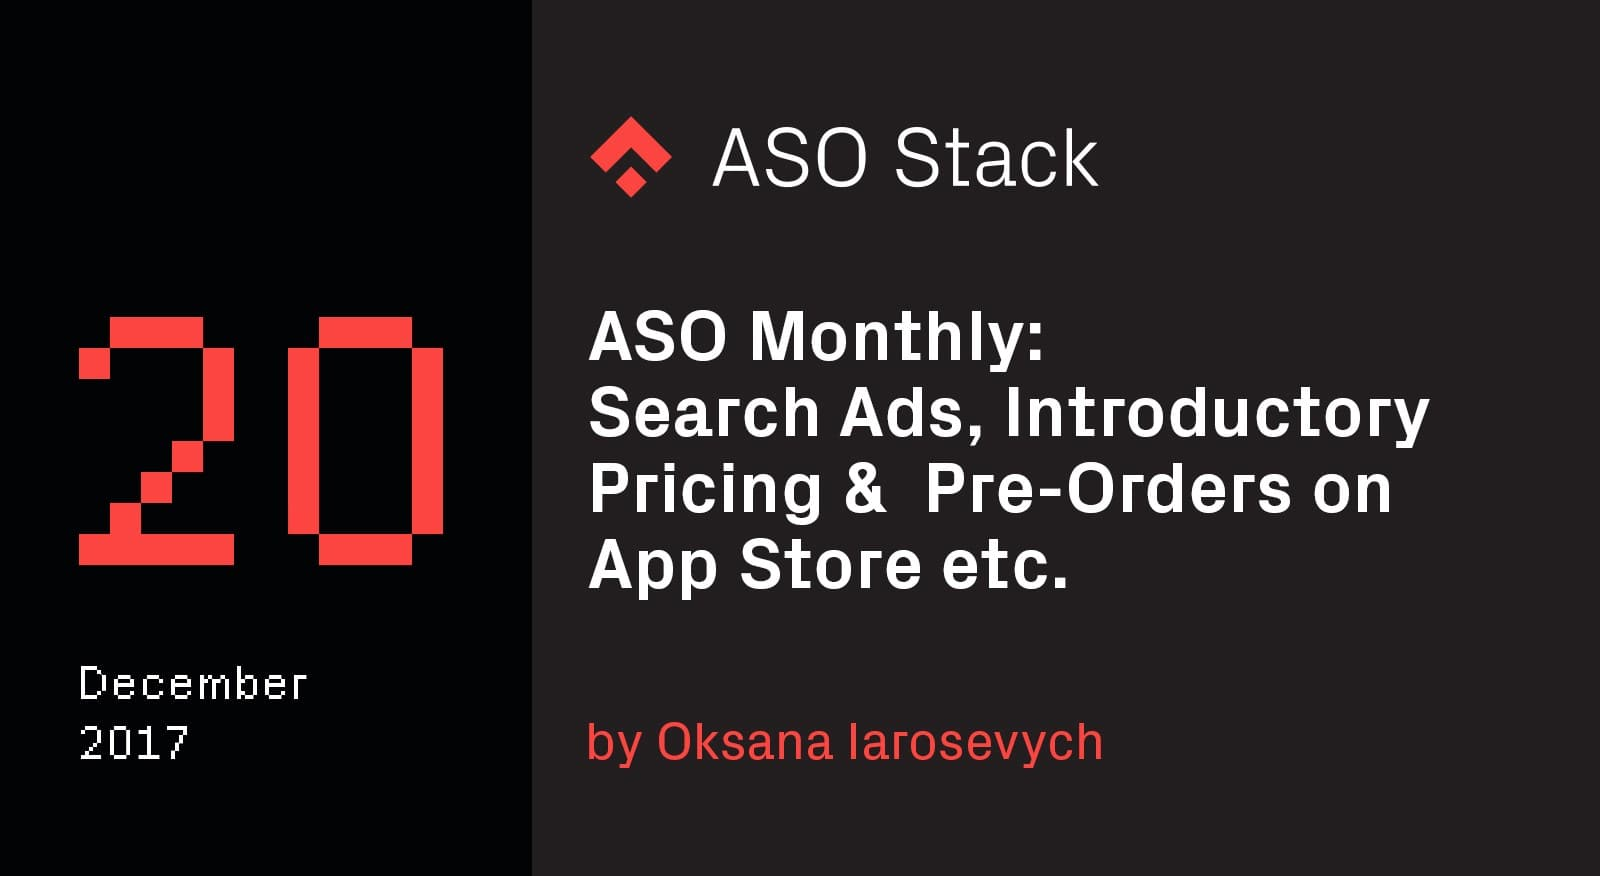 ASO Monthly #20 December 2017- Search Ads Basic, Introductory Pricing & Pre-Orders on App Store etc. -min